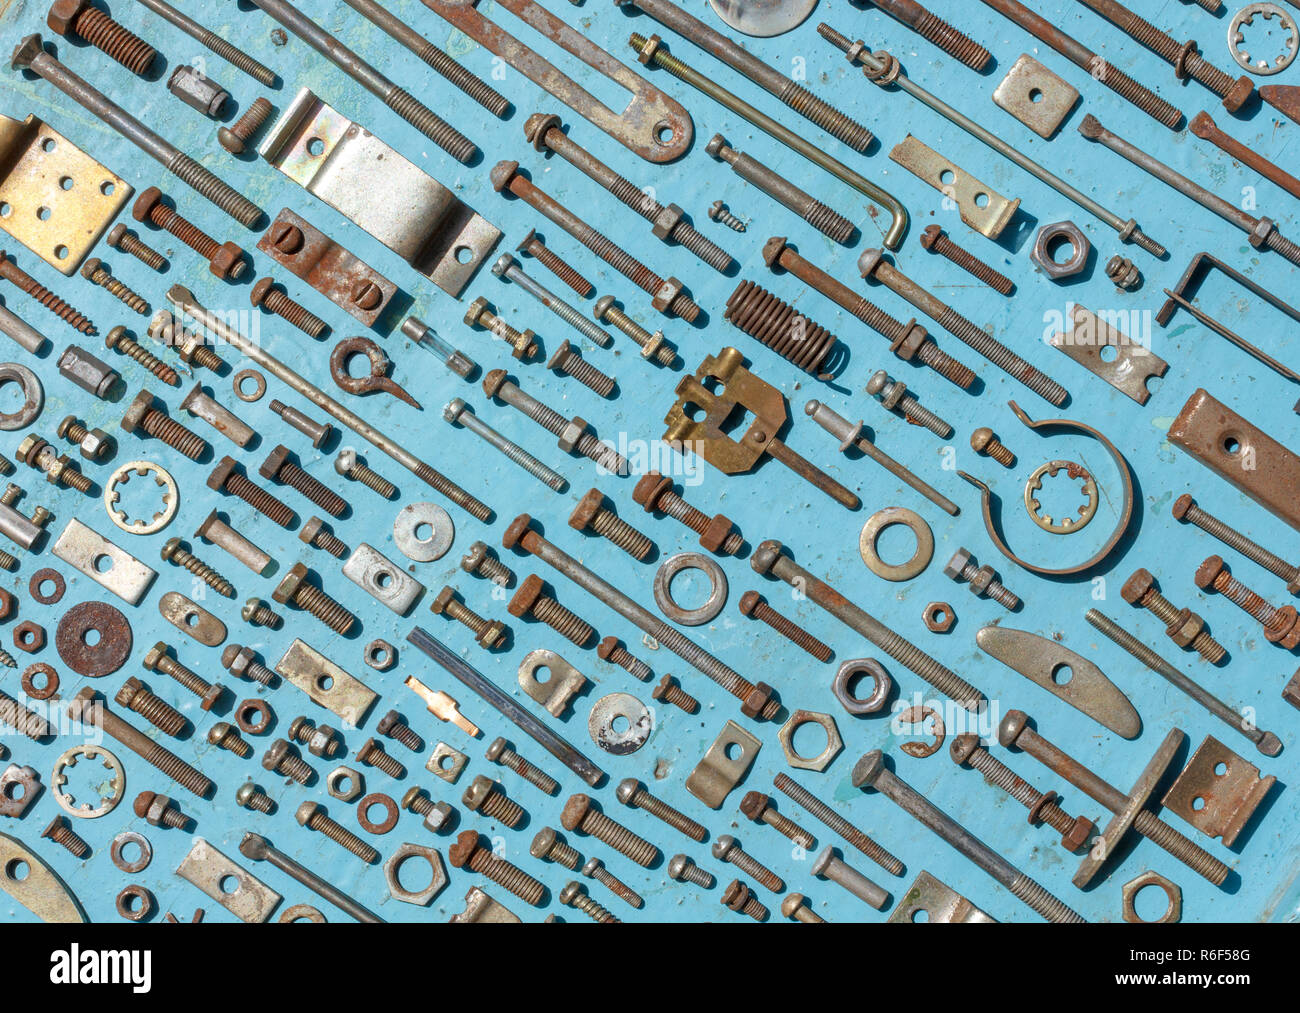 set of old rusty metal screws, nuts and bolts on a blue background. Flat lay, top view Stock Photo